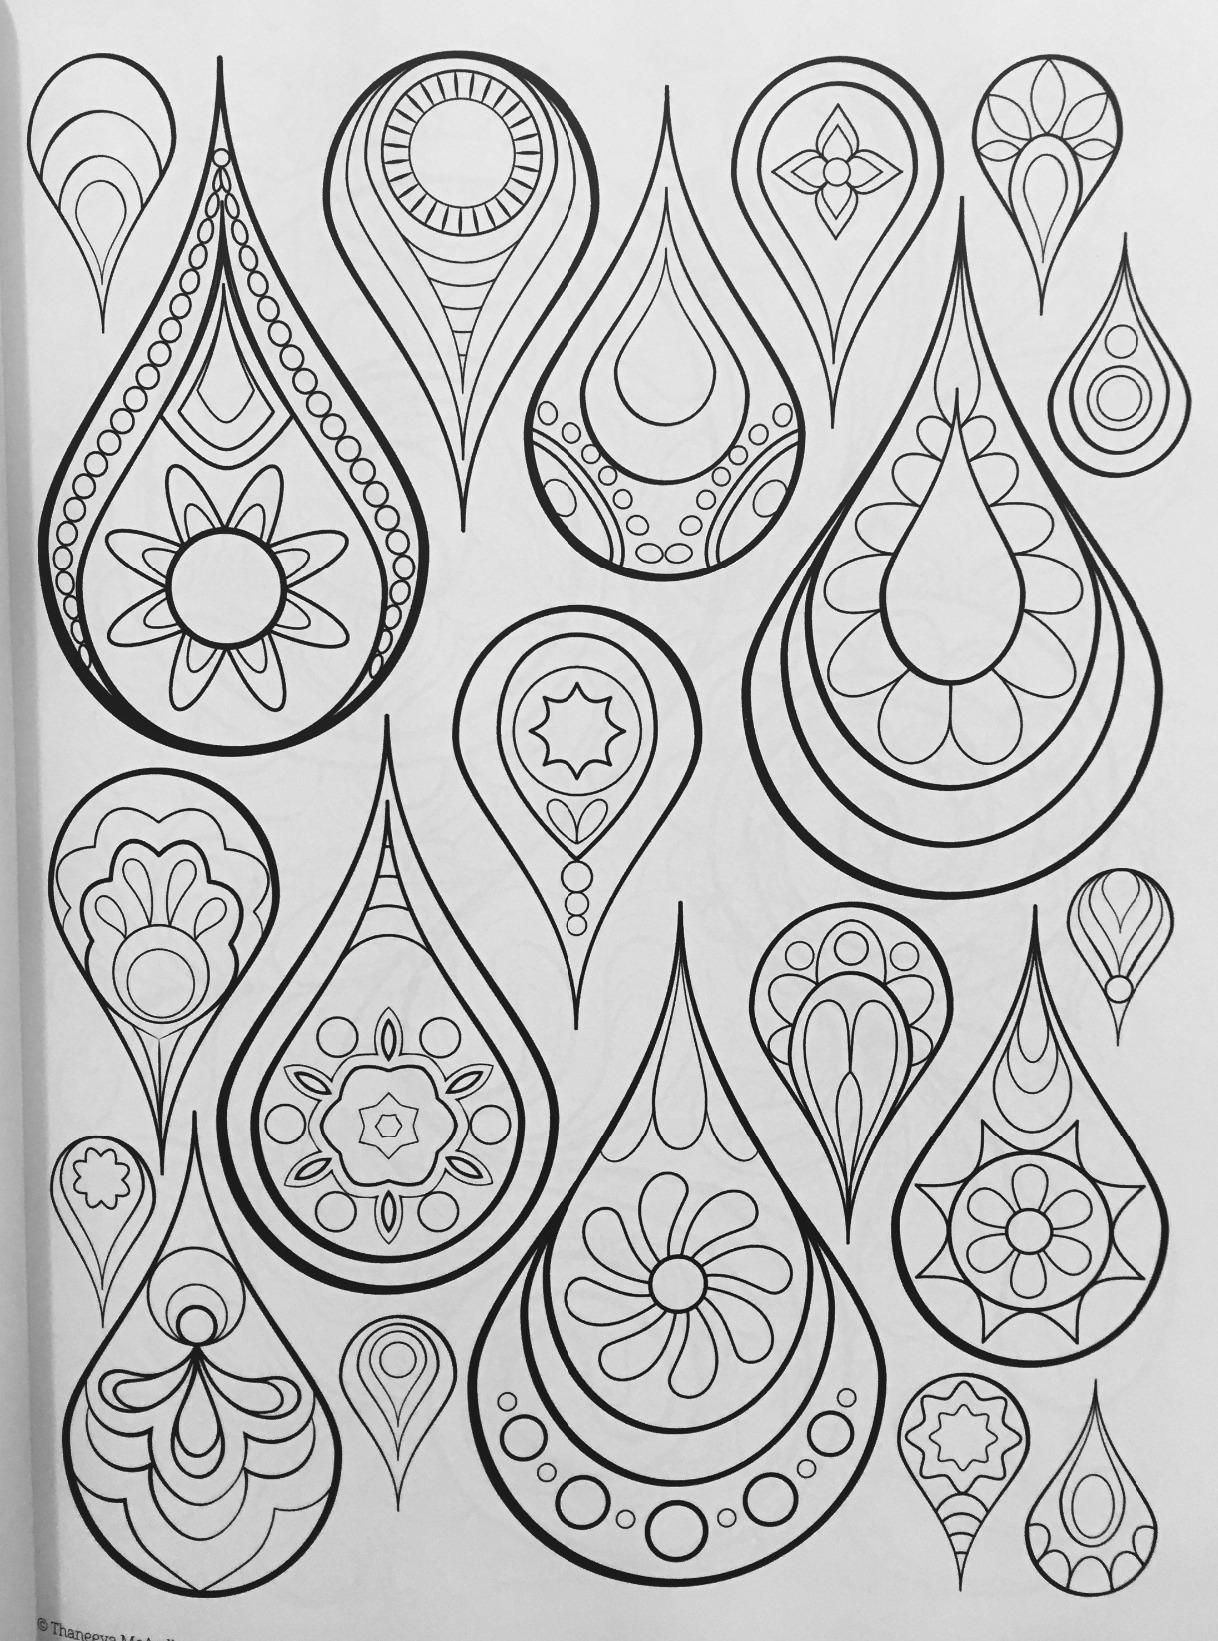 Amazon Groovy Abstract Coloring Book Design Originals Is Fun